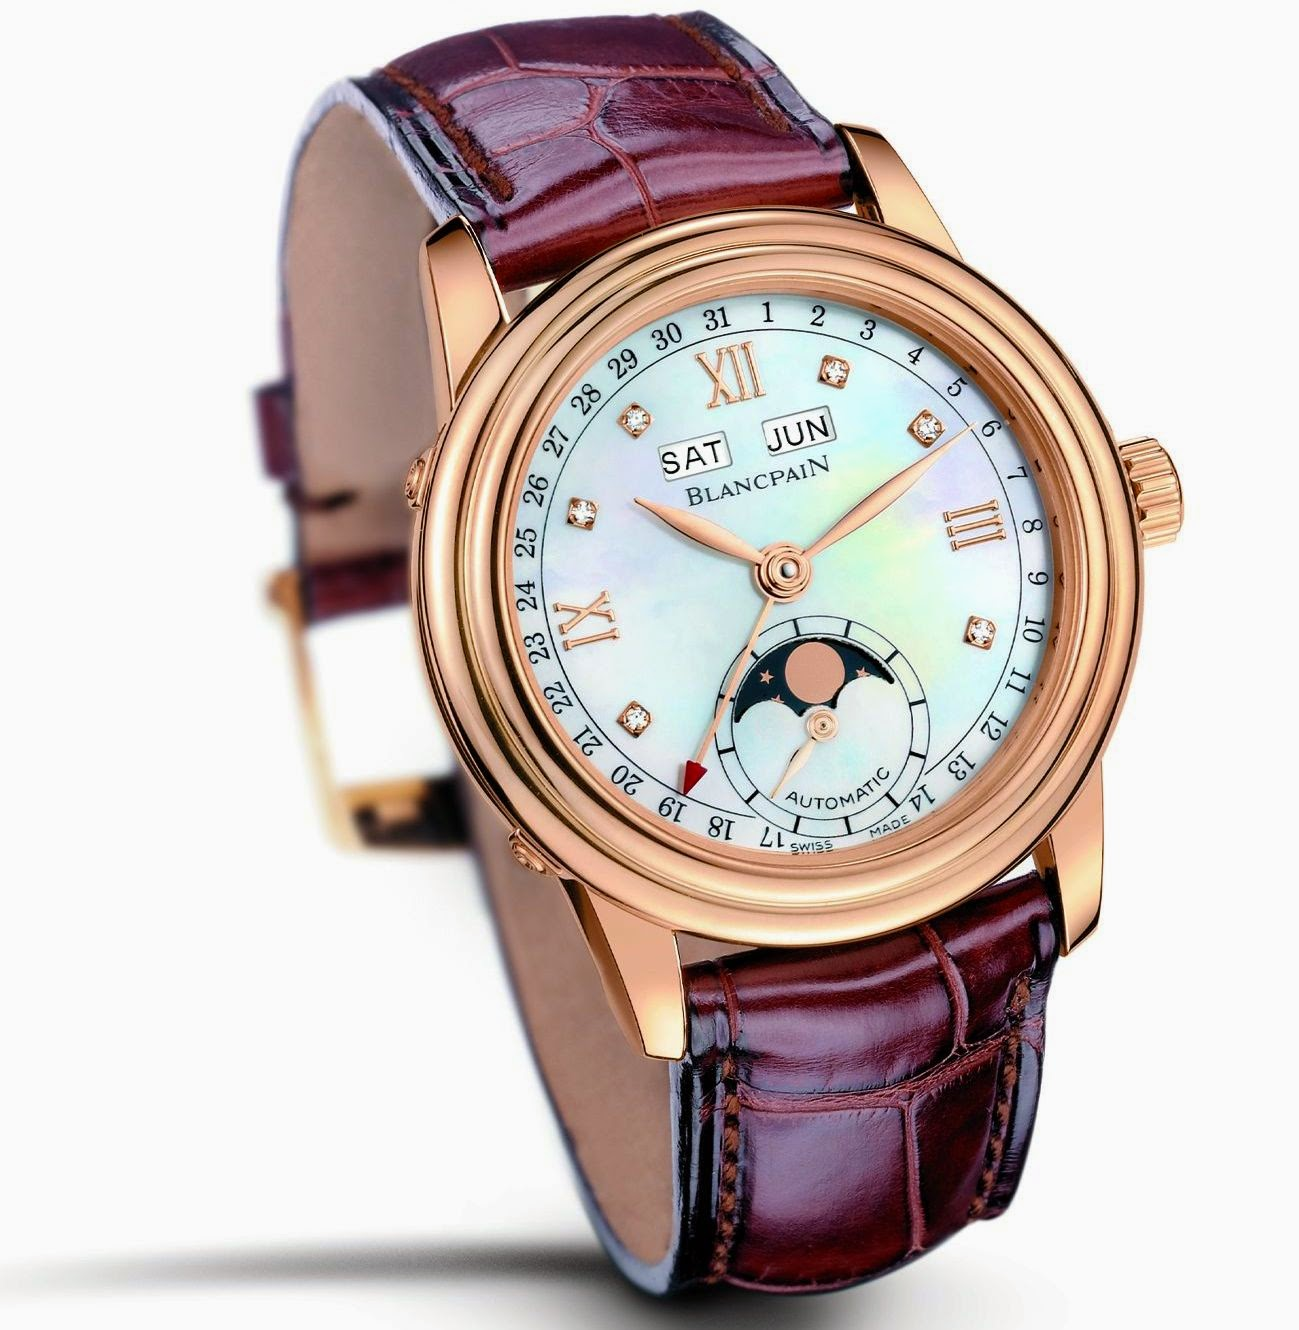 BLANCPAIN Leman, Red Gold Case with White Mother-of-Pearl Dial, 2002